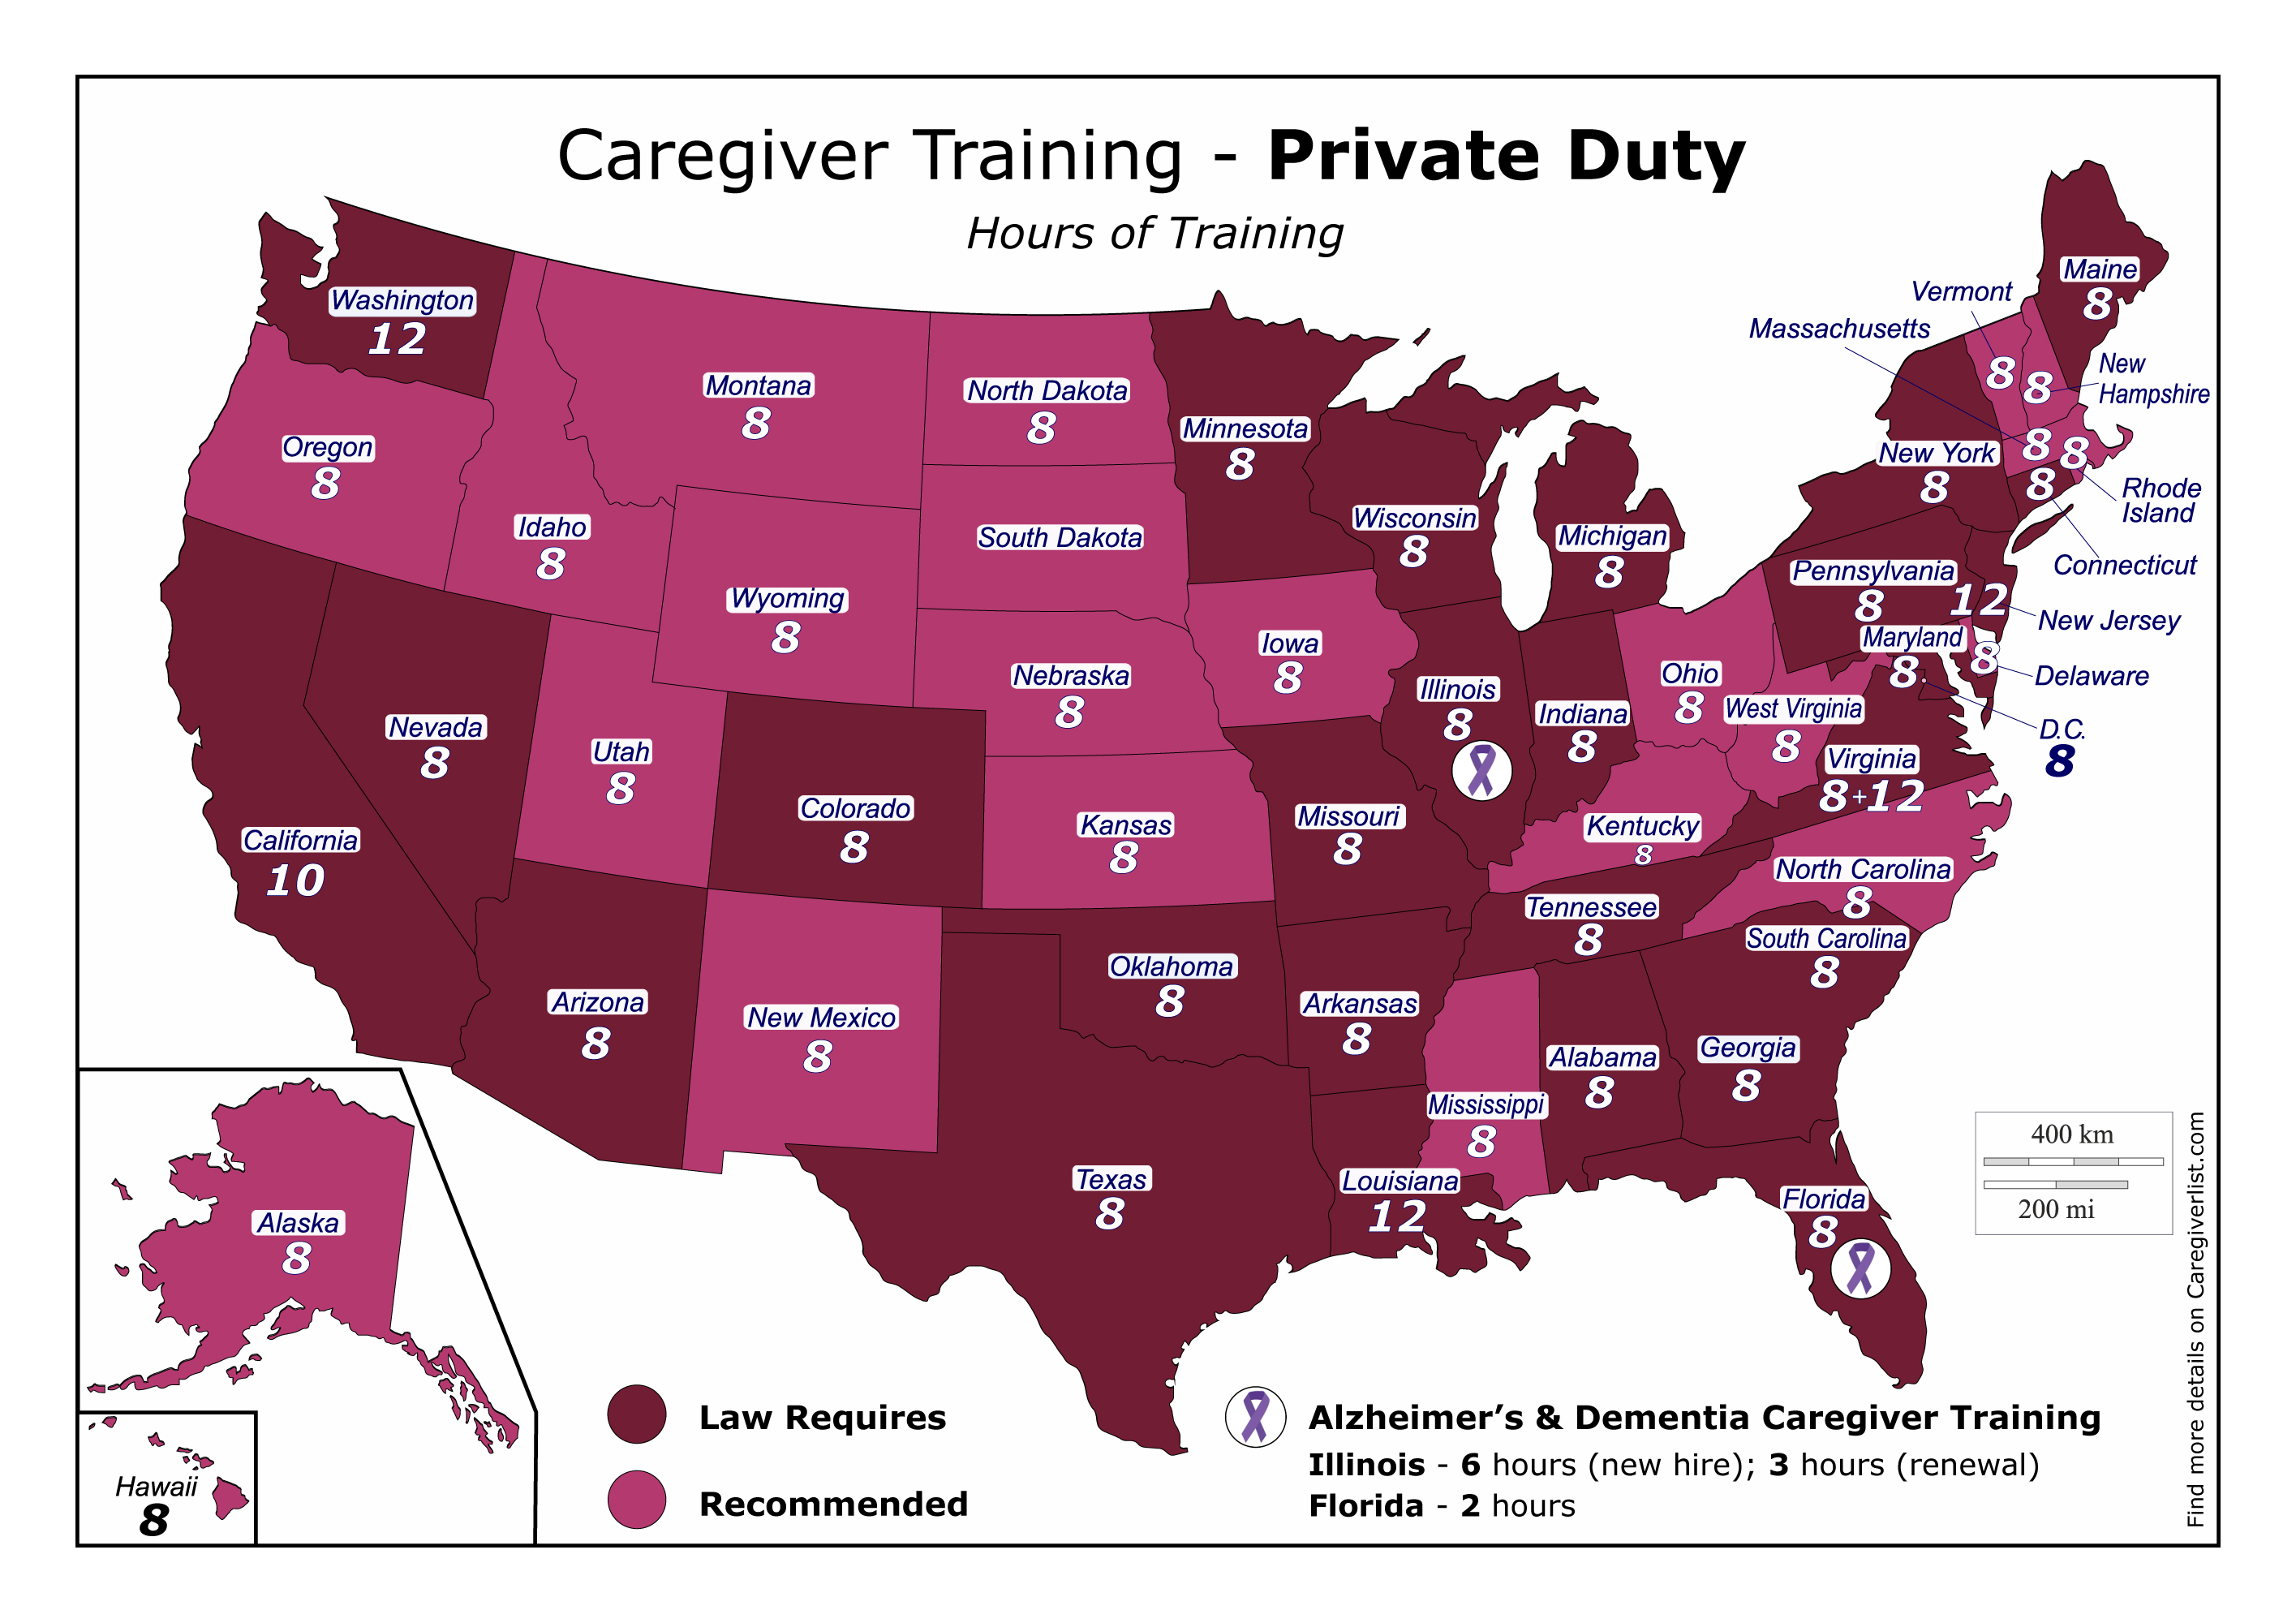 USA Caregiver Training Guidelines in Each State